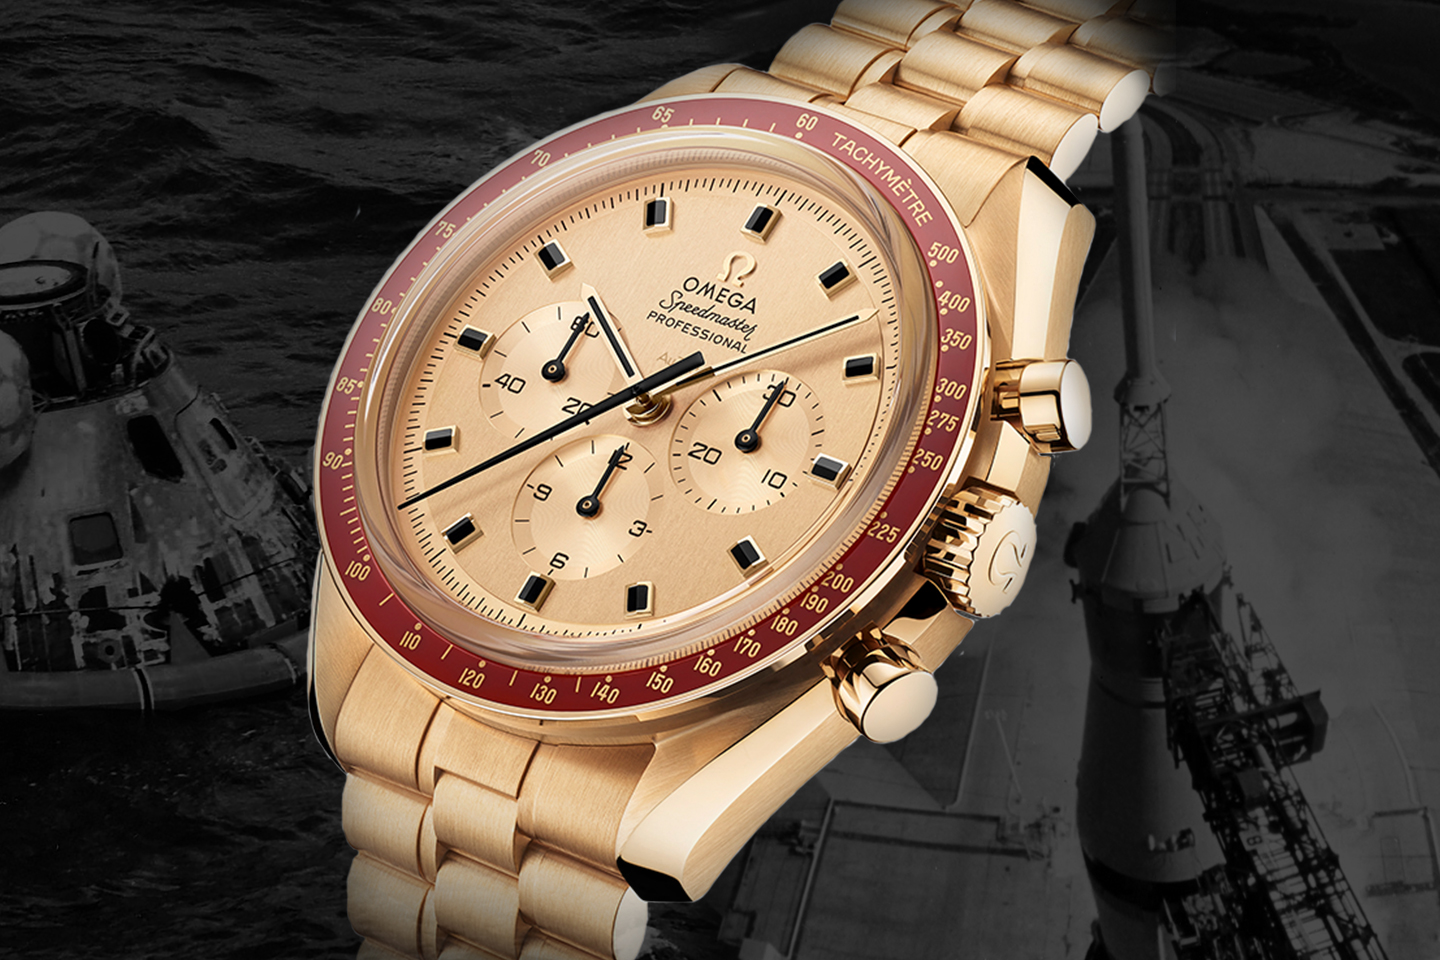 c369b03c690 50 years ago, when Man first stepped on to the moon, they were wearing the  Omega Speedmaster.